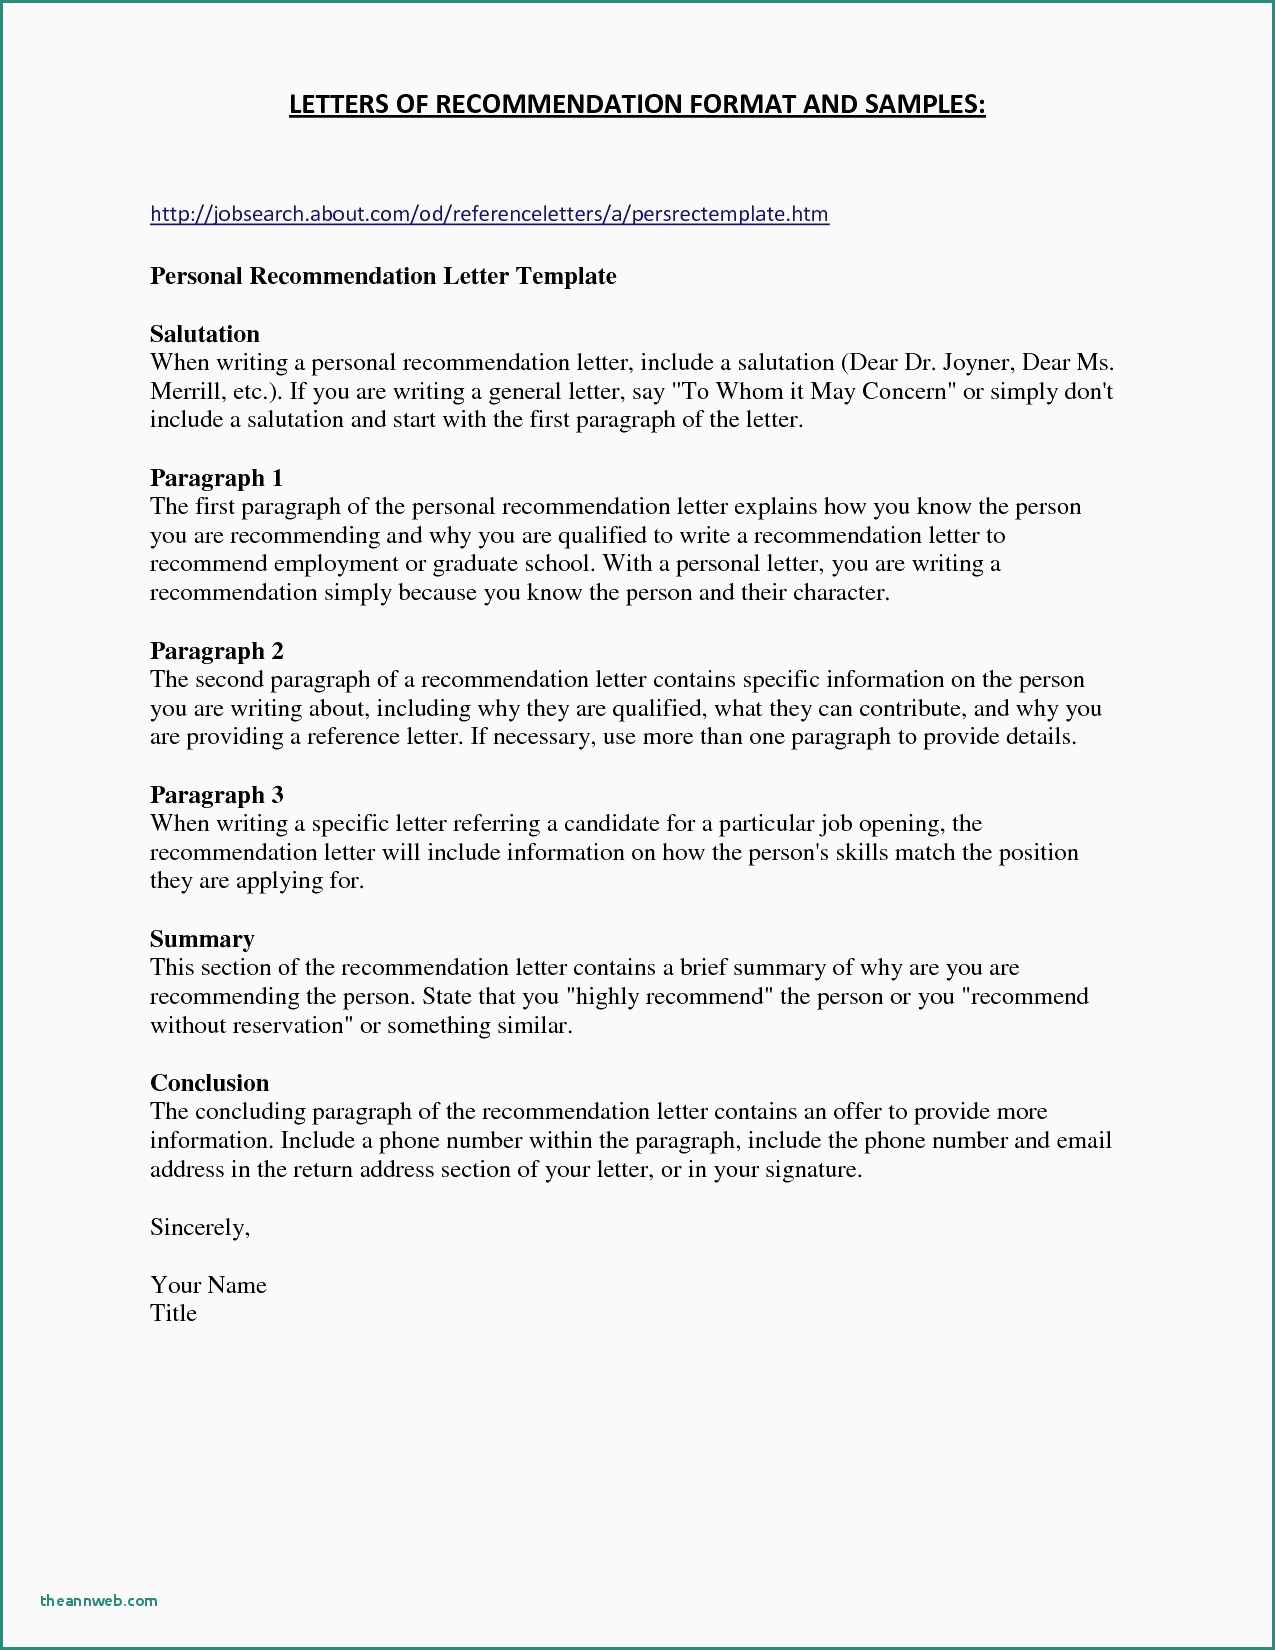 Generic Resume Template - Resume Web Template Fresh Resume Web Template Inspirational Fishing